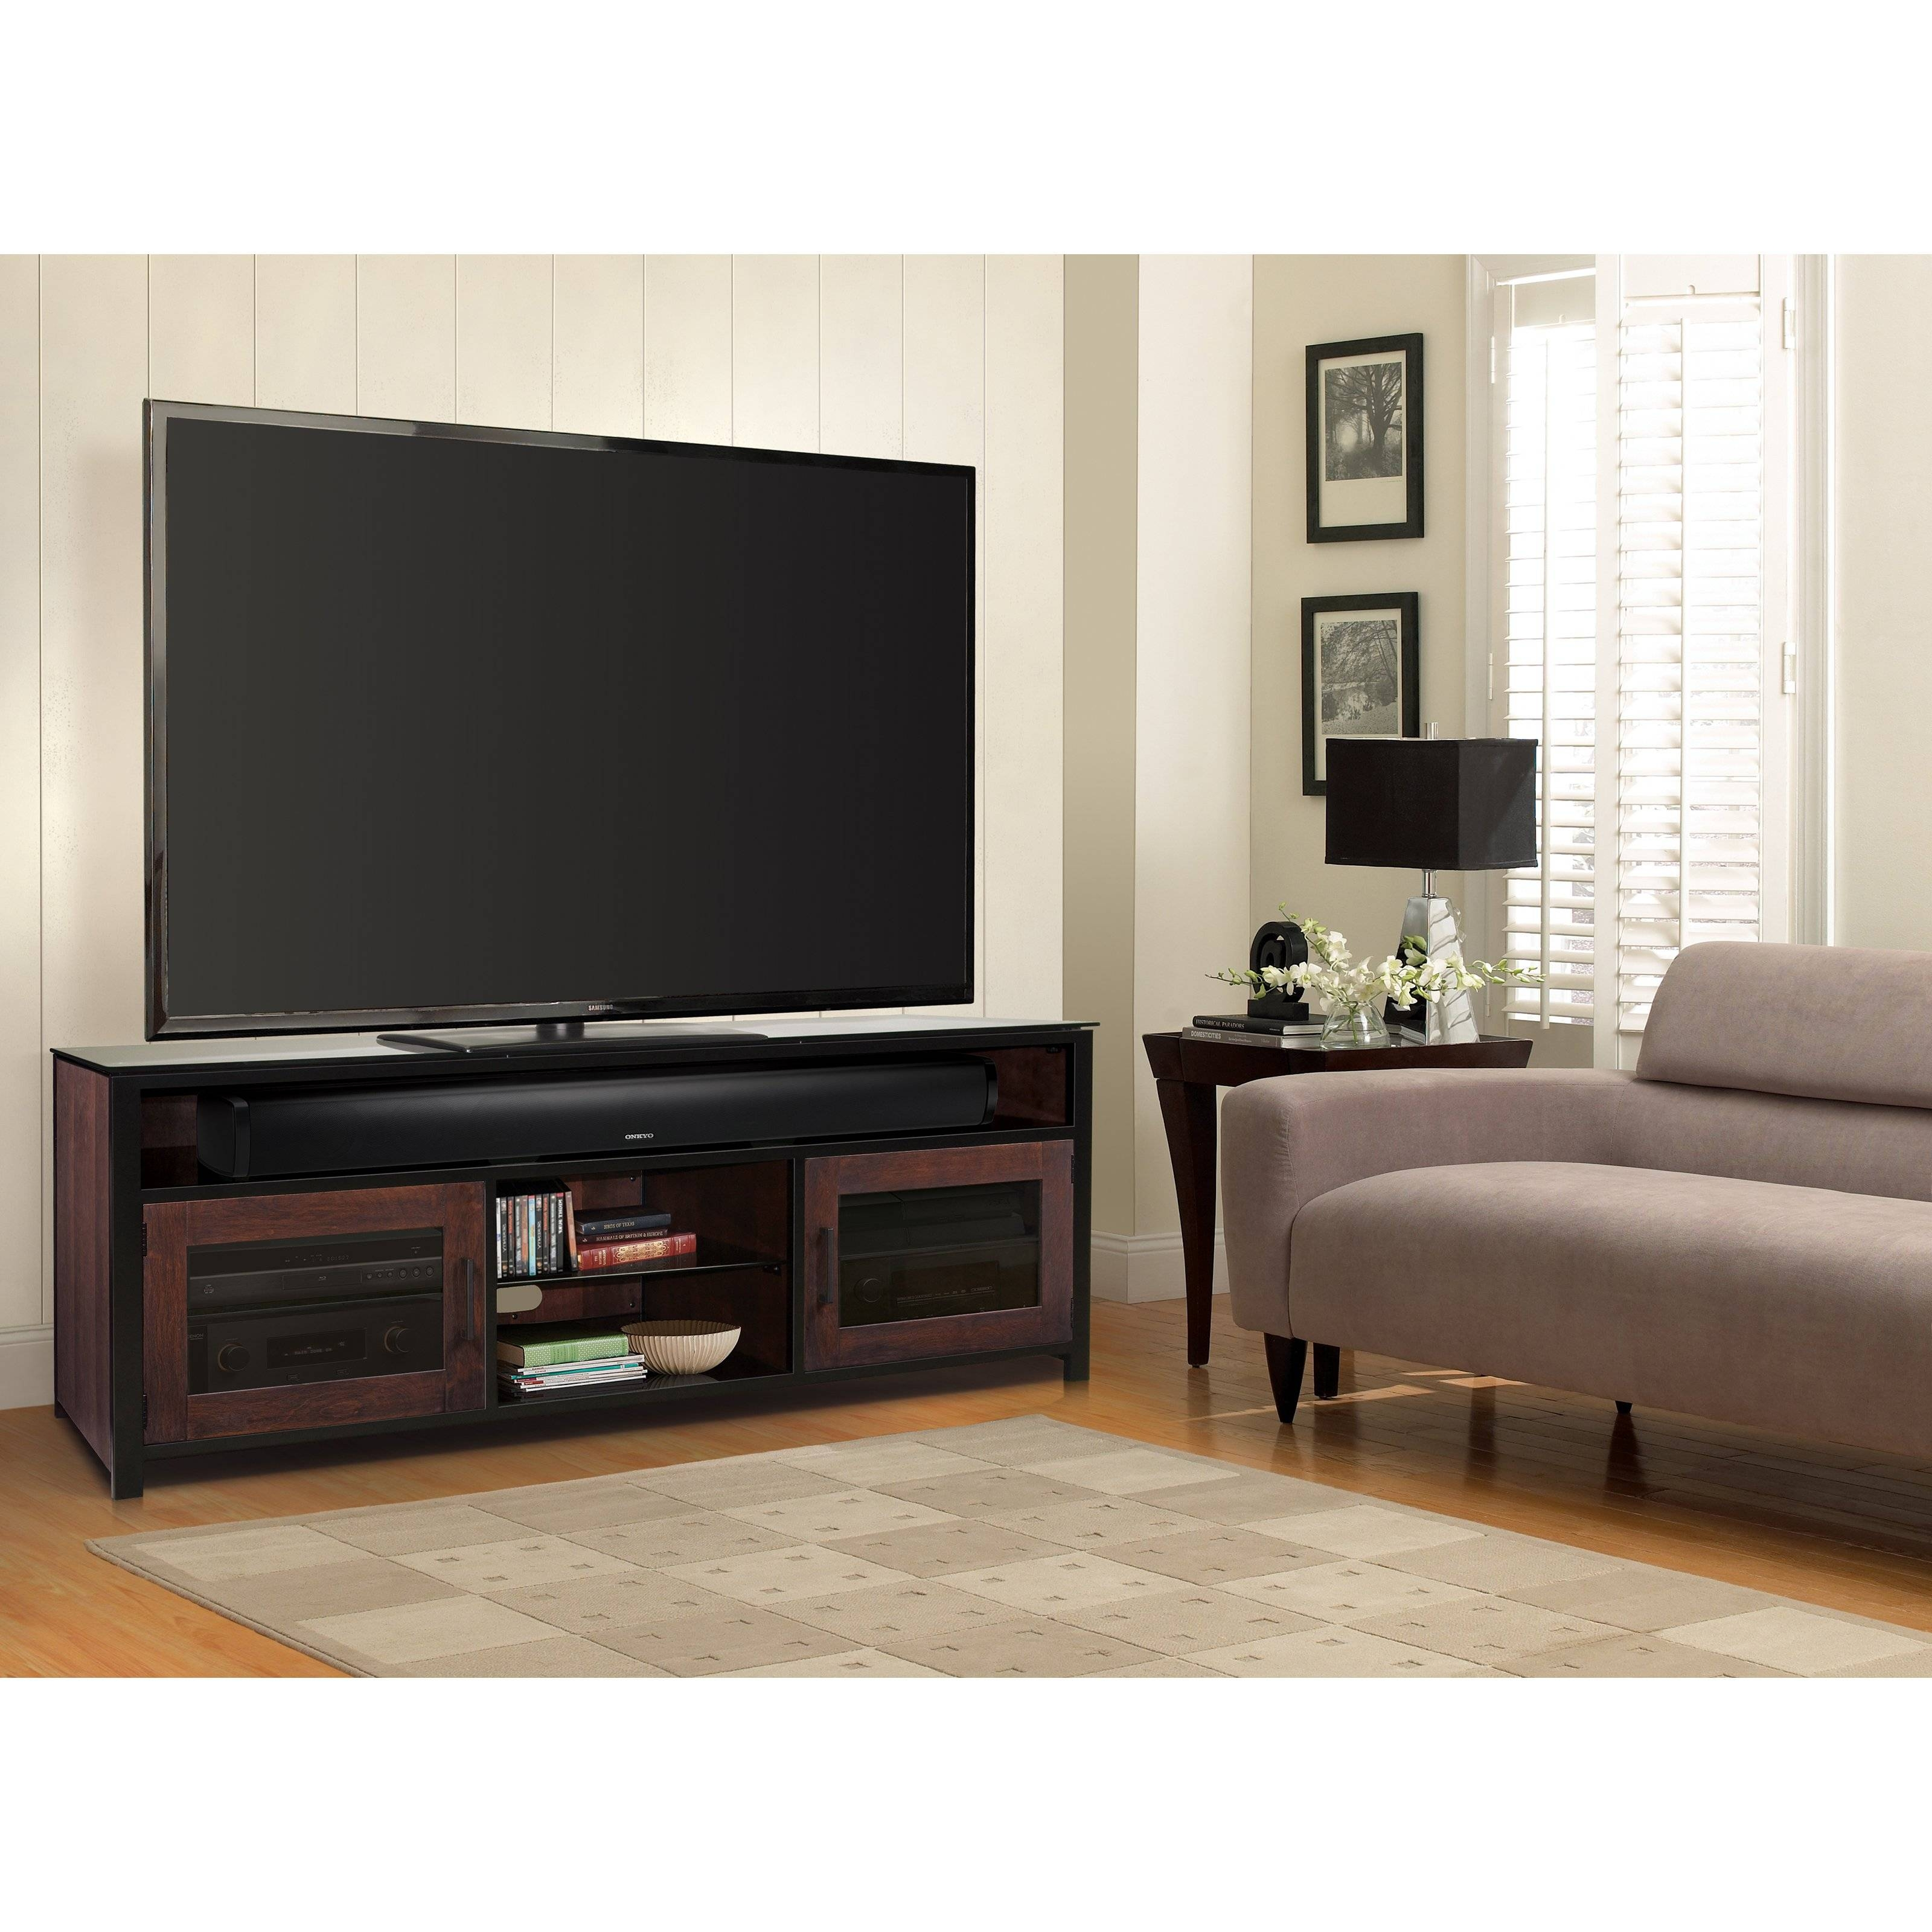 Bell'o Bedford Audio / Video Cabinet - Cocoa - Walmart with regard to Bedford Tv Stands (Image 2 of 15)